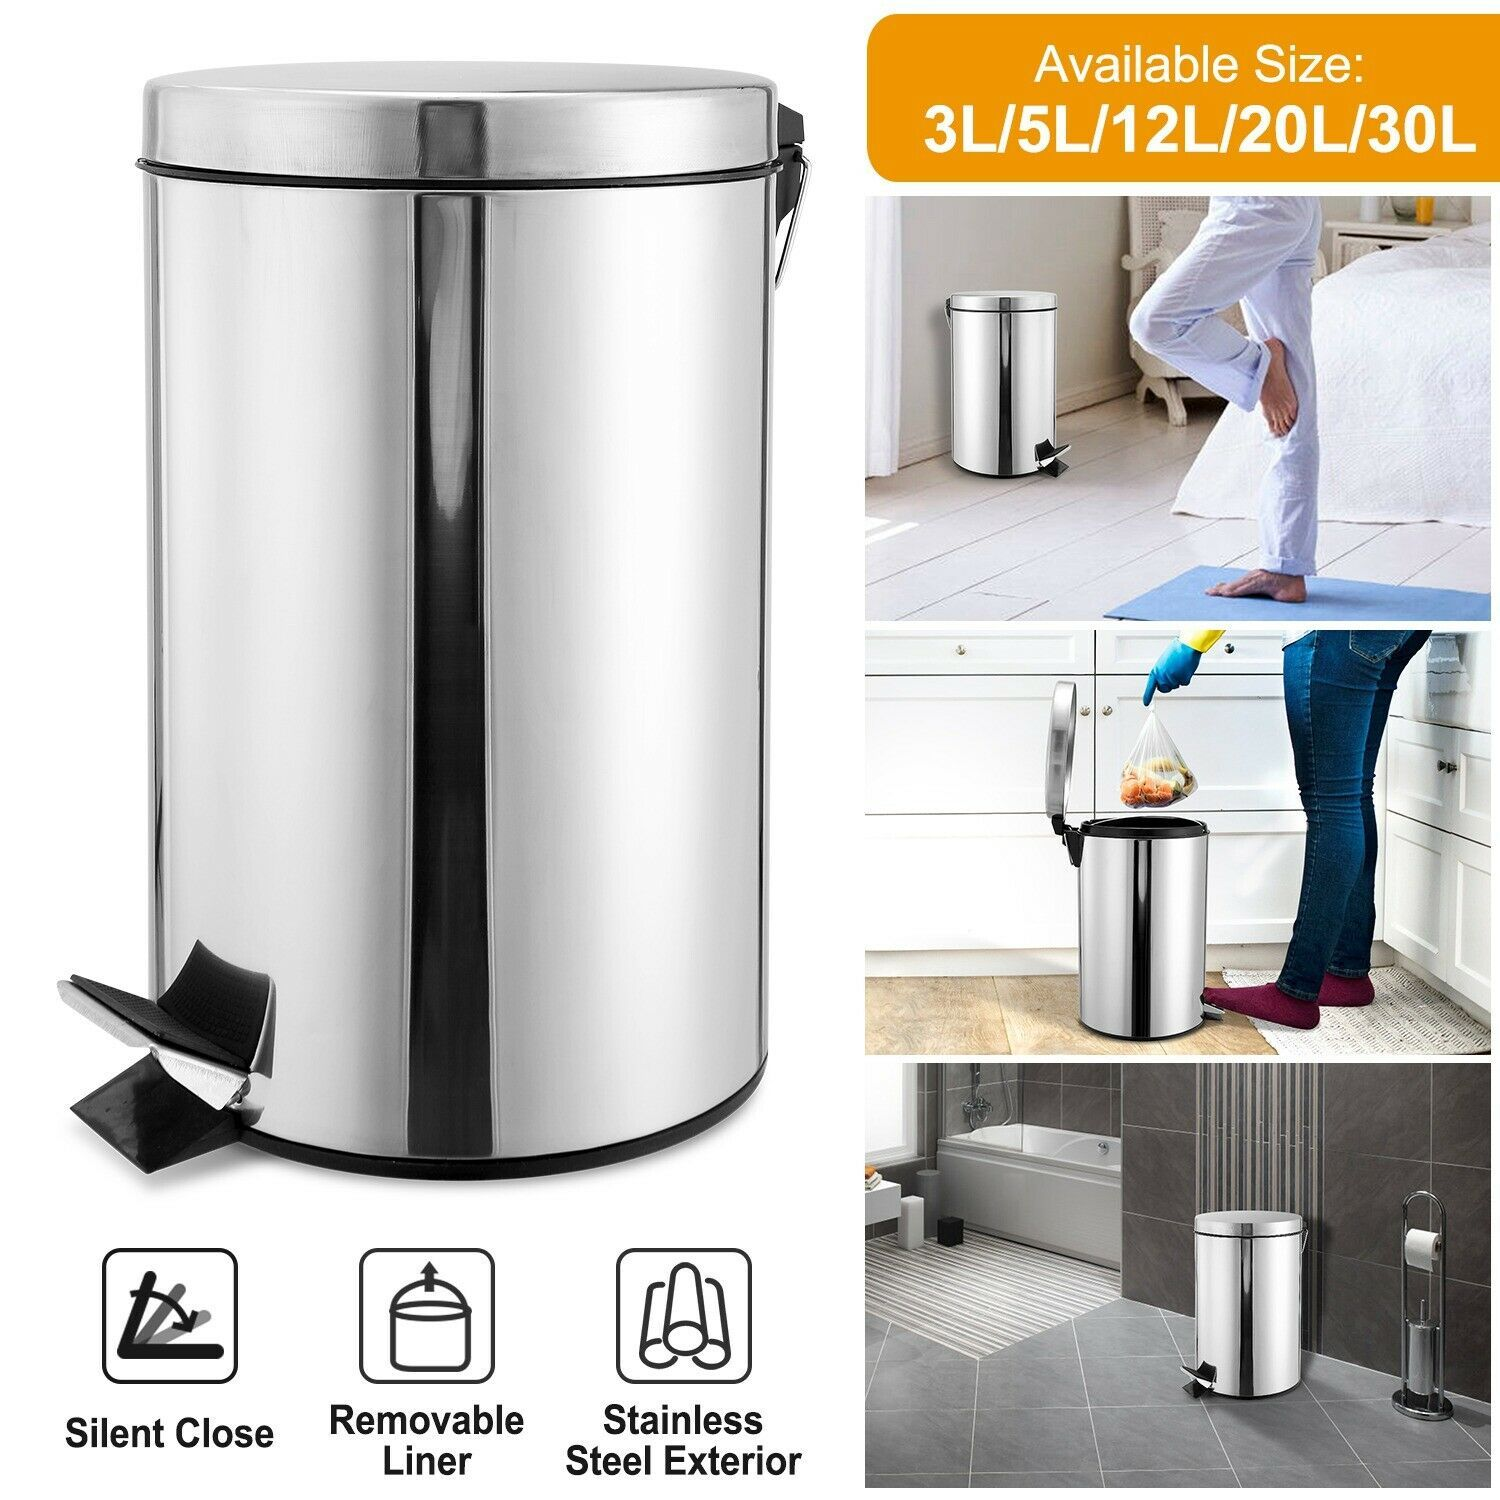 Details About Step Trash Can Garbage Bin Lid Kitchen Office Round Stainless Steel Dustbin Trash Can Garbage Bin Office Bin